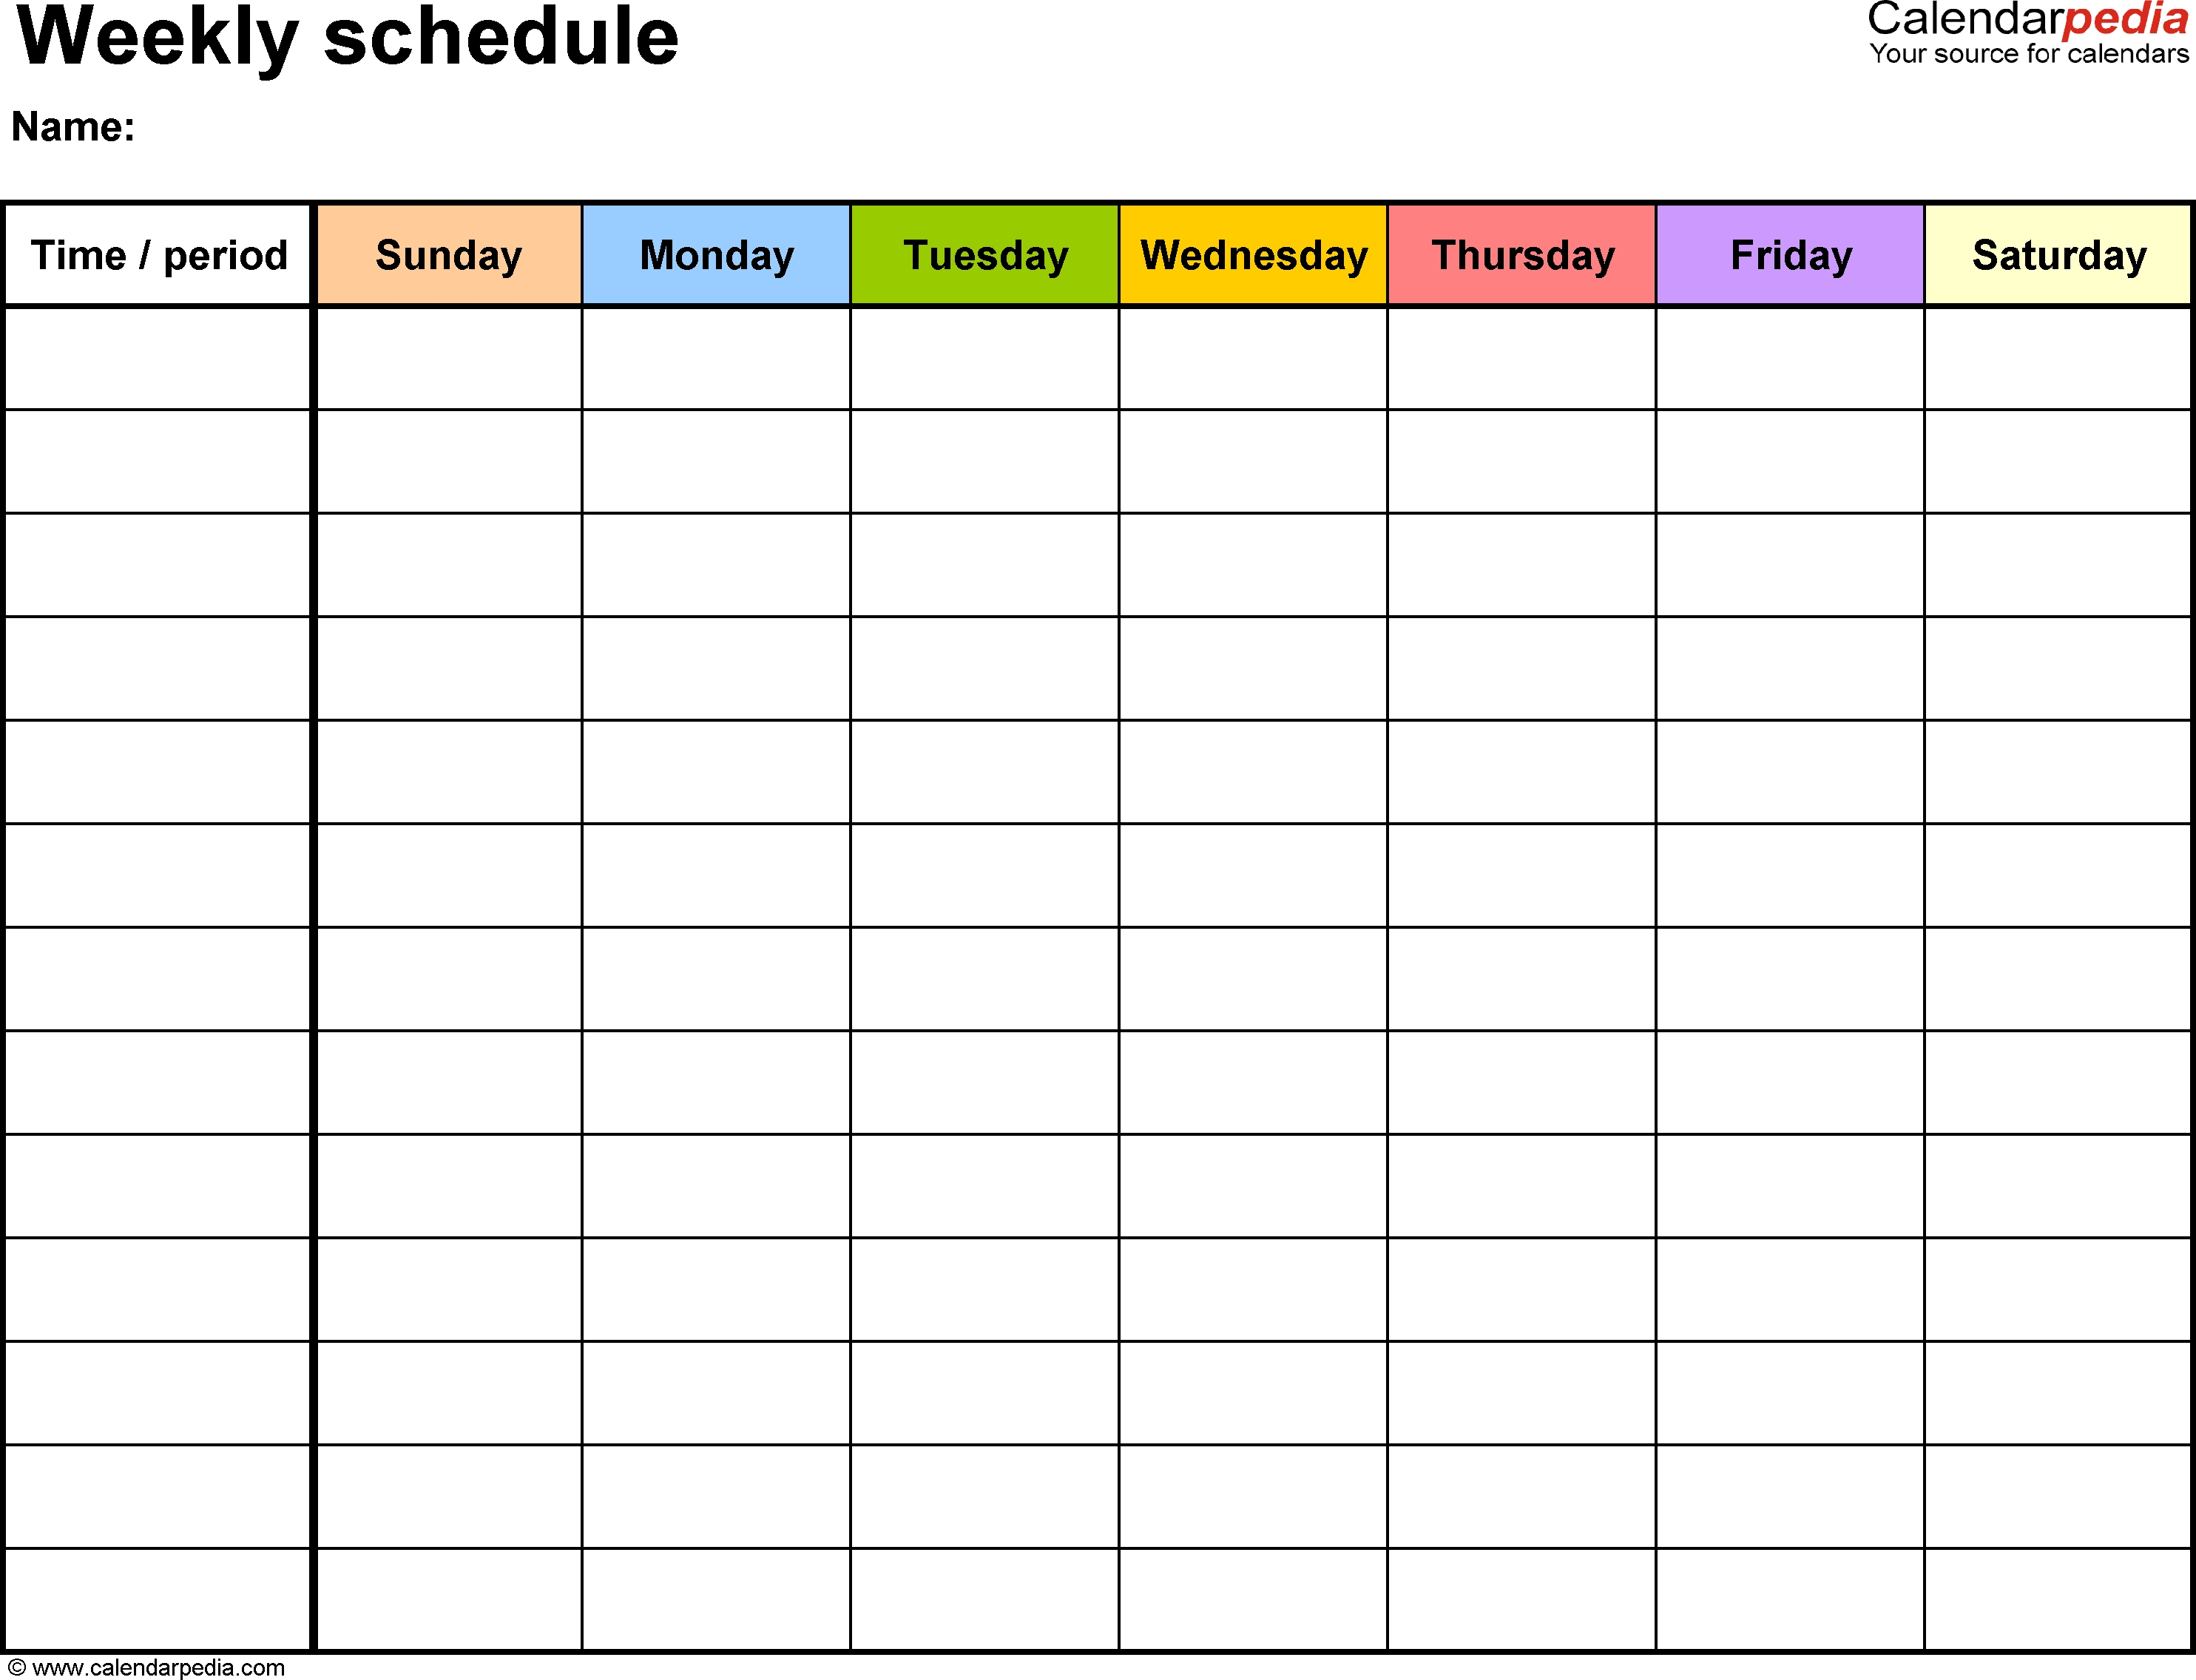 Free Weekly Schedule Templates For Excel - 18 Templates with Days Of The Week Schedules Free Template